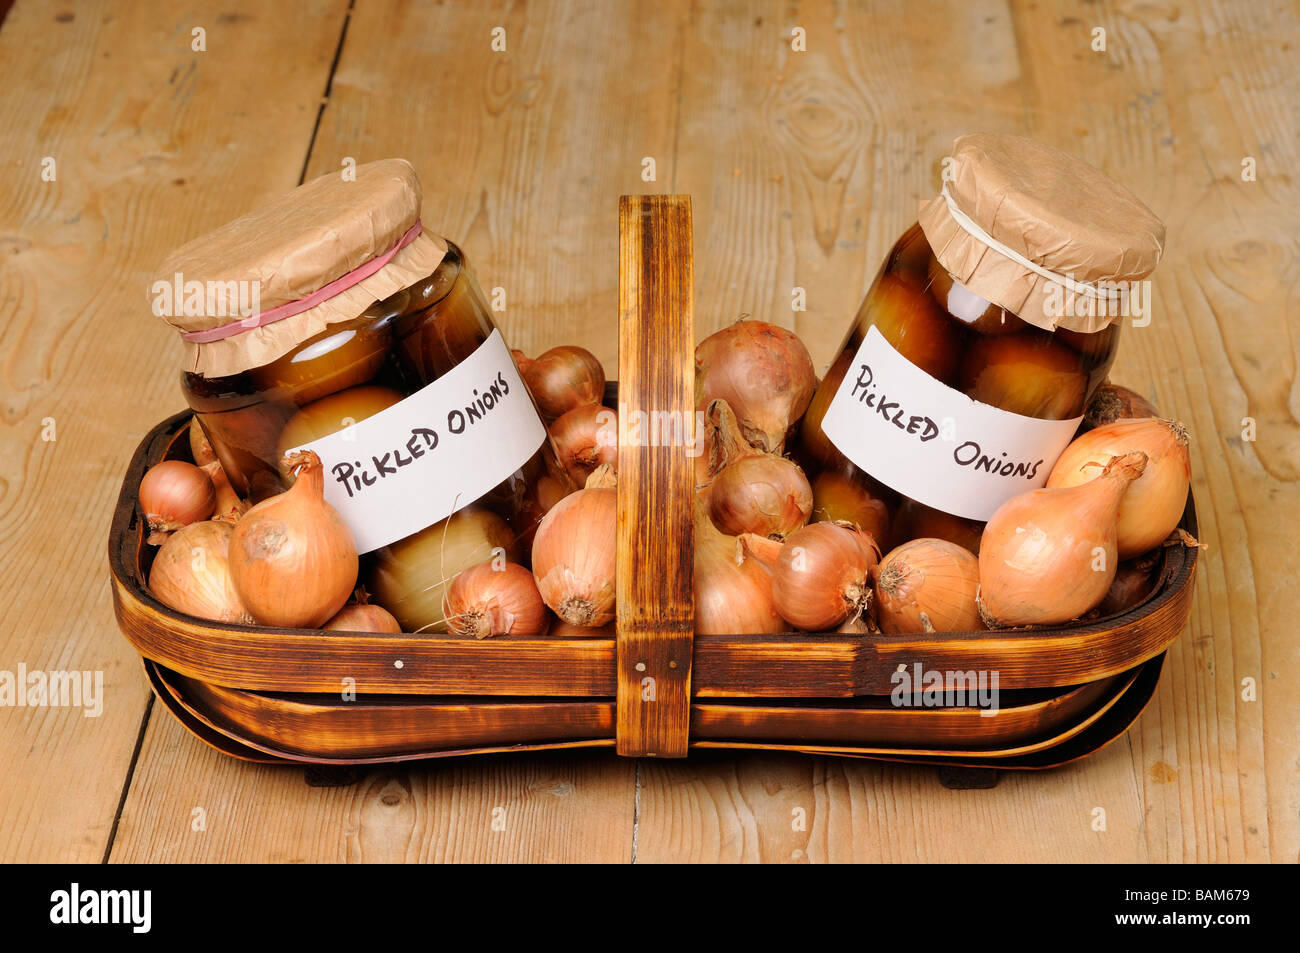 Two Pickled Onions Stockfotos & Two Pickled Onions Bilder - Alamy